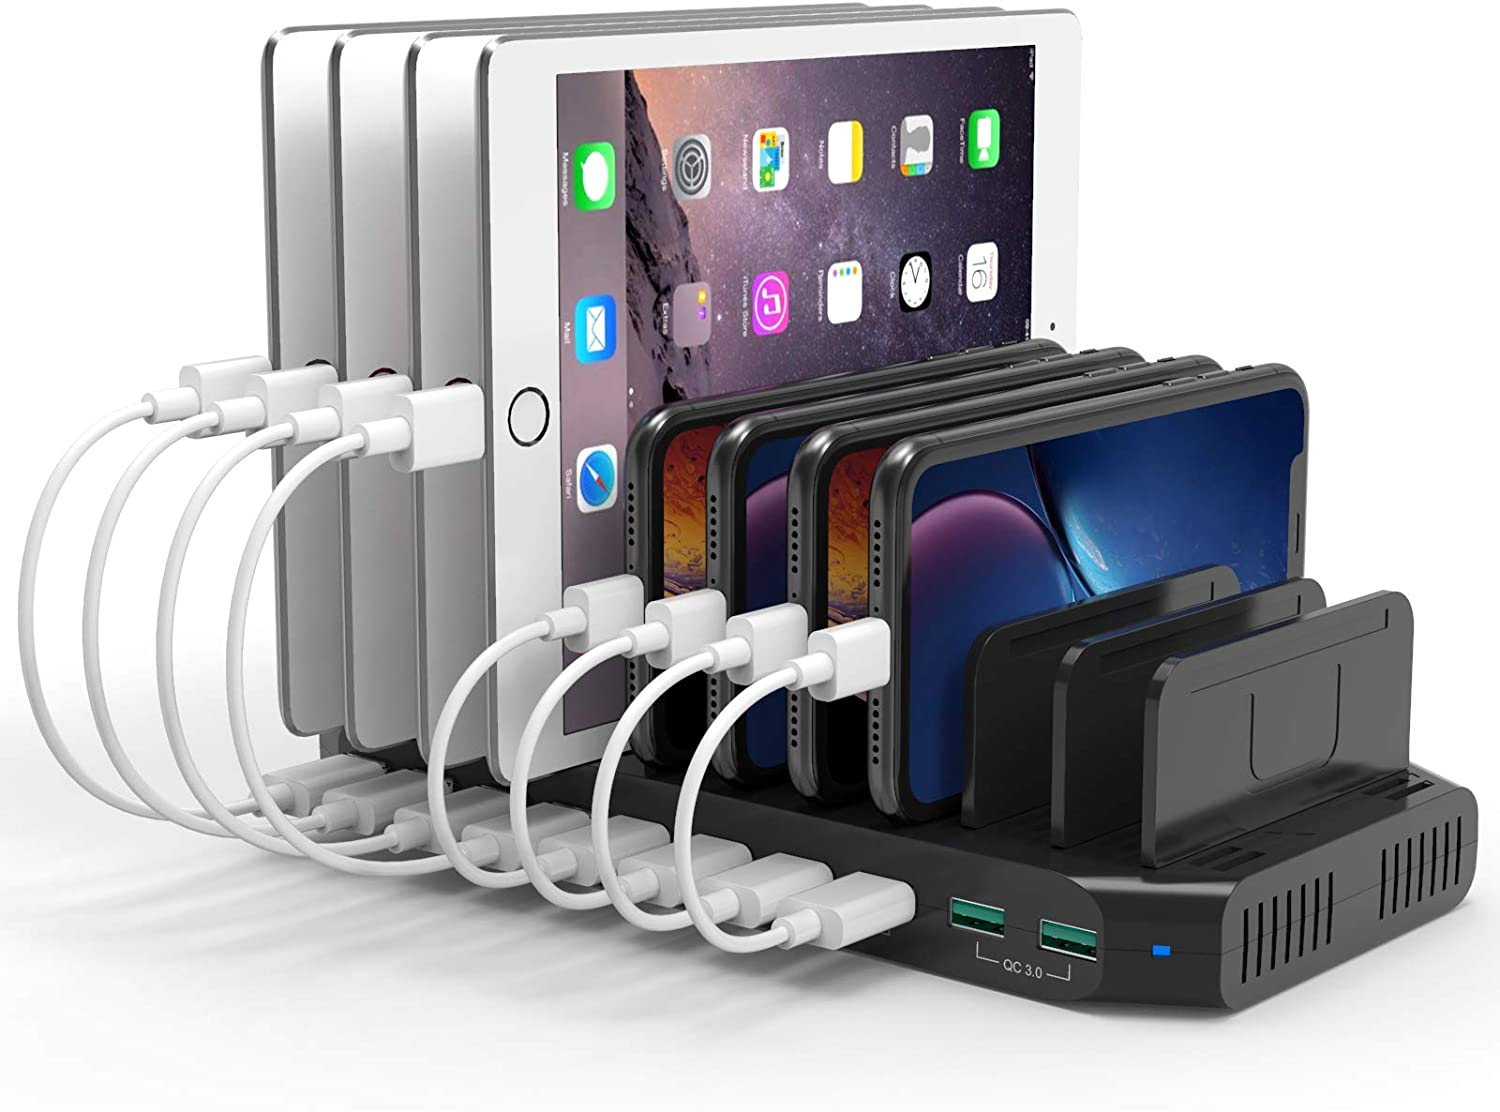 Alxum USB Charging Station 10 Port with 2 QC 3.0, Multi Fast Charging Dock Station for Multiple Devices, Organizer Stand with Detachable Dividers for Cell Phones, Tablets, and Other Electronics, Black